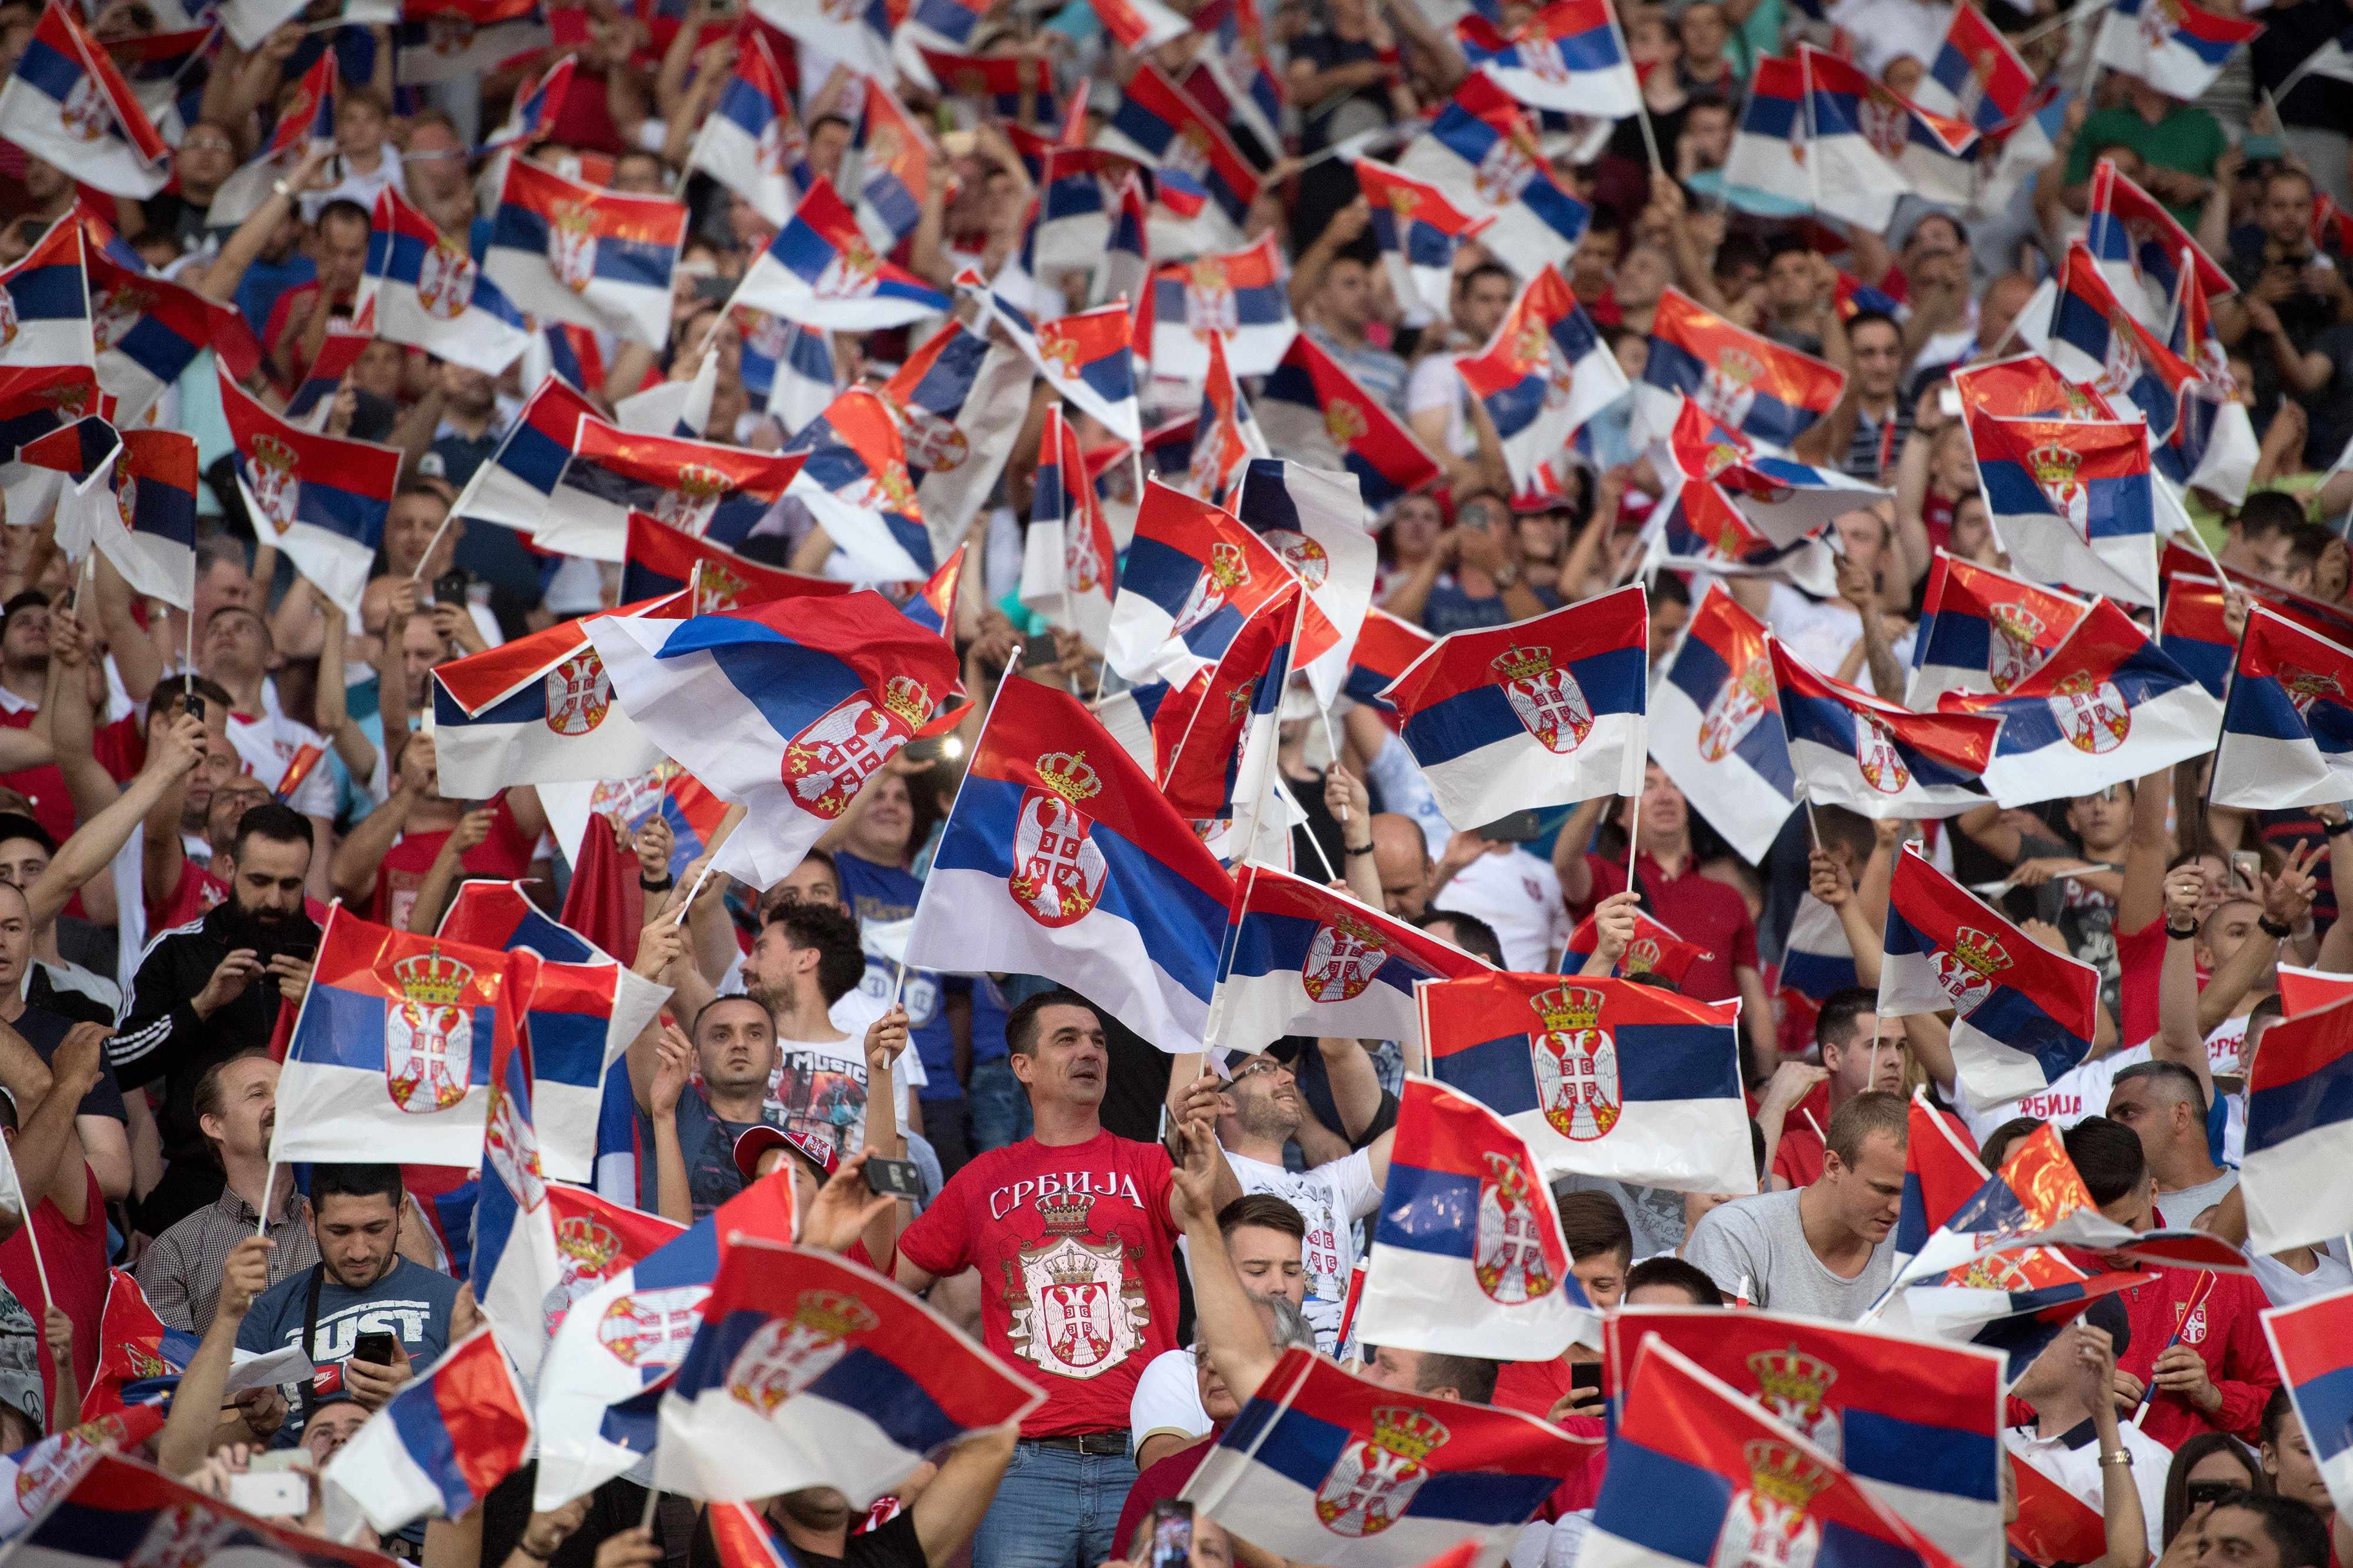 Serbian supporters wave national flags ahead of the WC 2018 football qualification match between Serbia and Wales in Belgrade on June 11, 2017.   / AFP PHOTO / ANDREJ ISAKOVIC        (Photo credit should read ANDREJ ISAKOVIC/AFP/Getty Images)